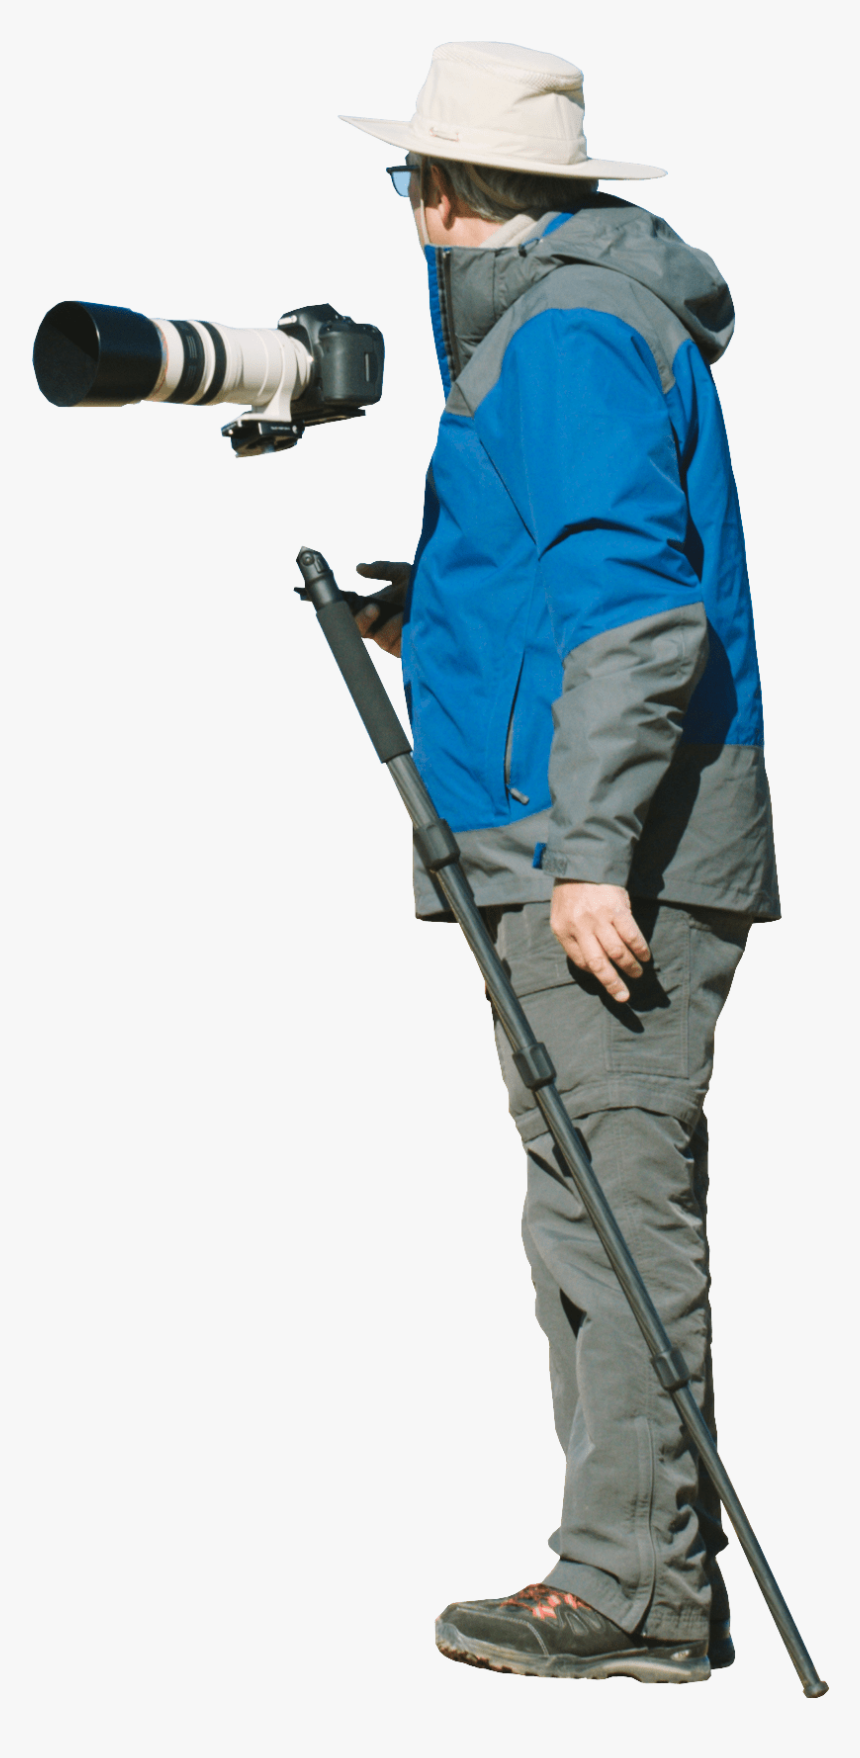 Tourist - People Tourist Png, Transparent Png, Free Download